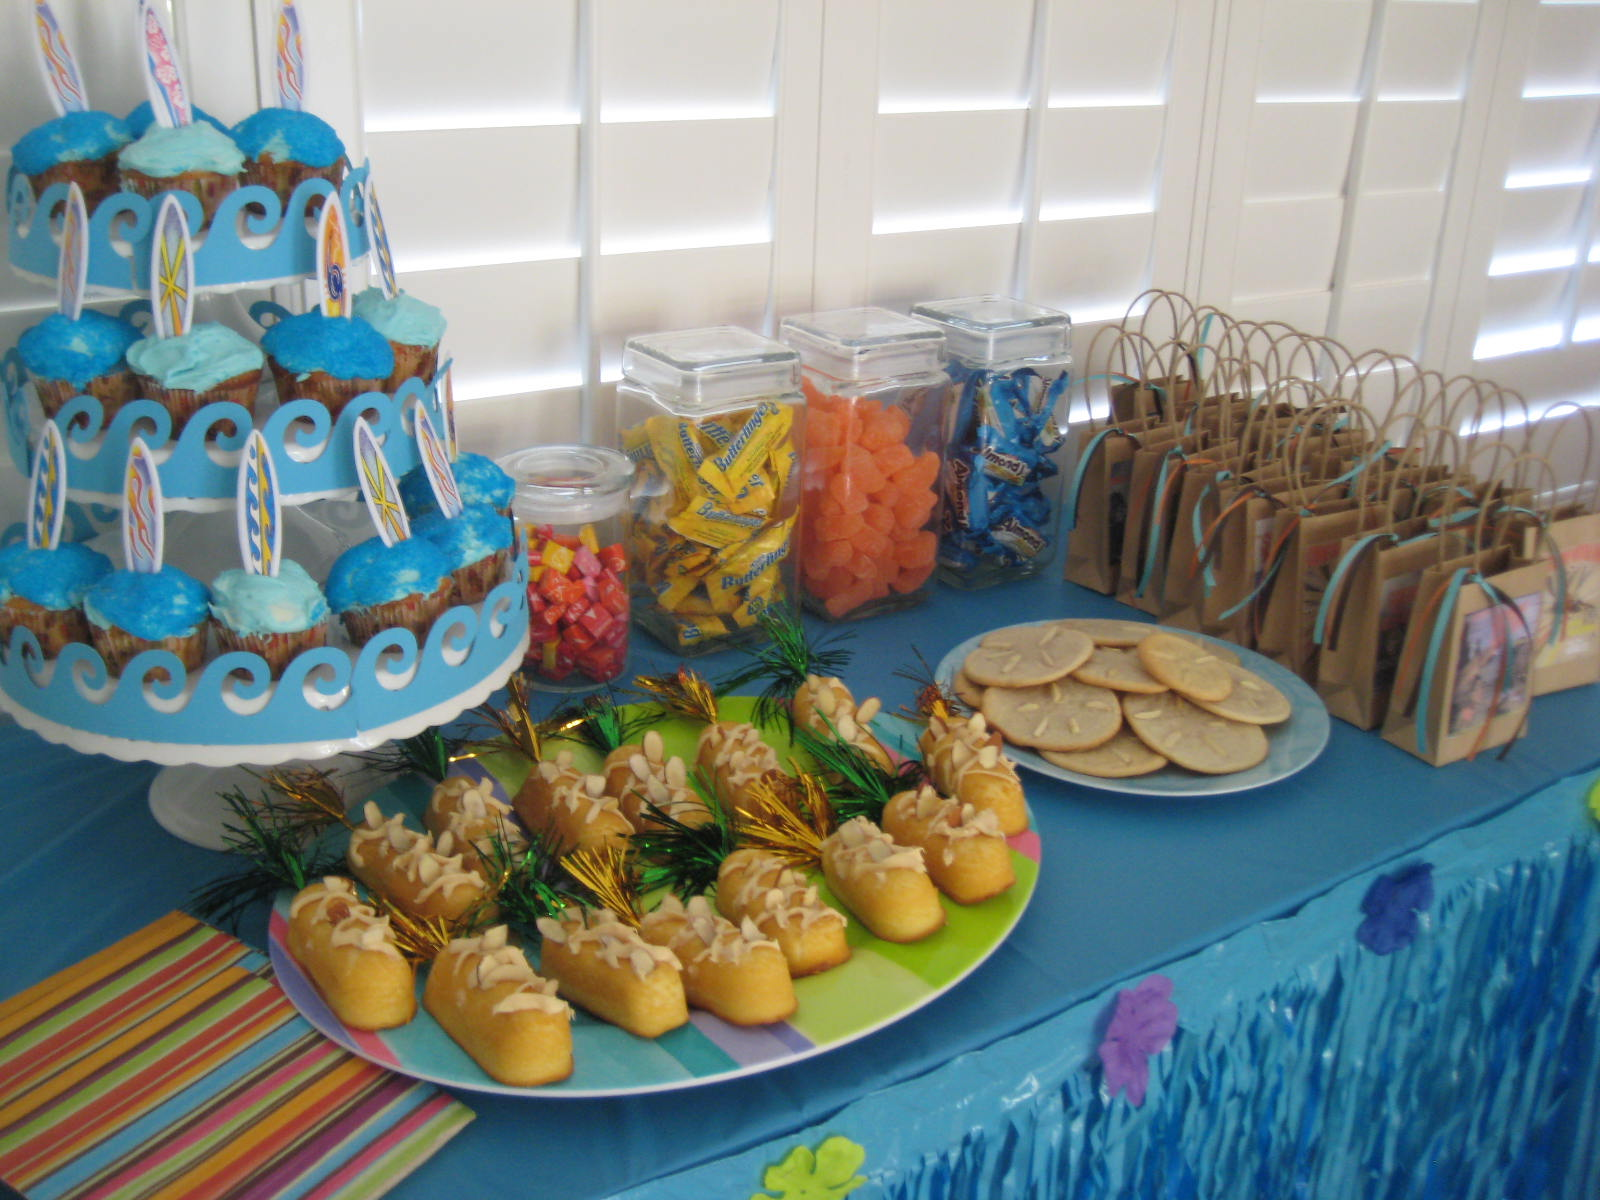 Easy to Make Luau Decorations http://hadecor.com/homemade-hawaiian-luau-decorations/